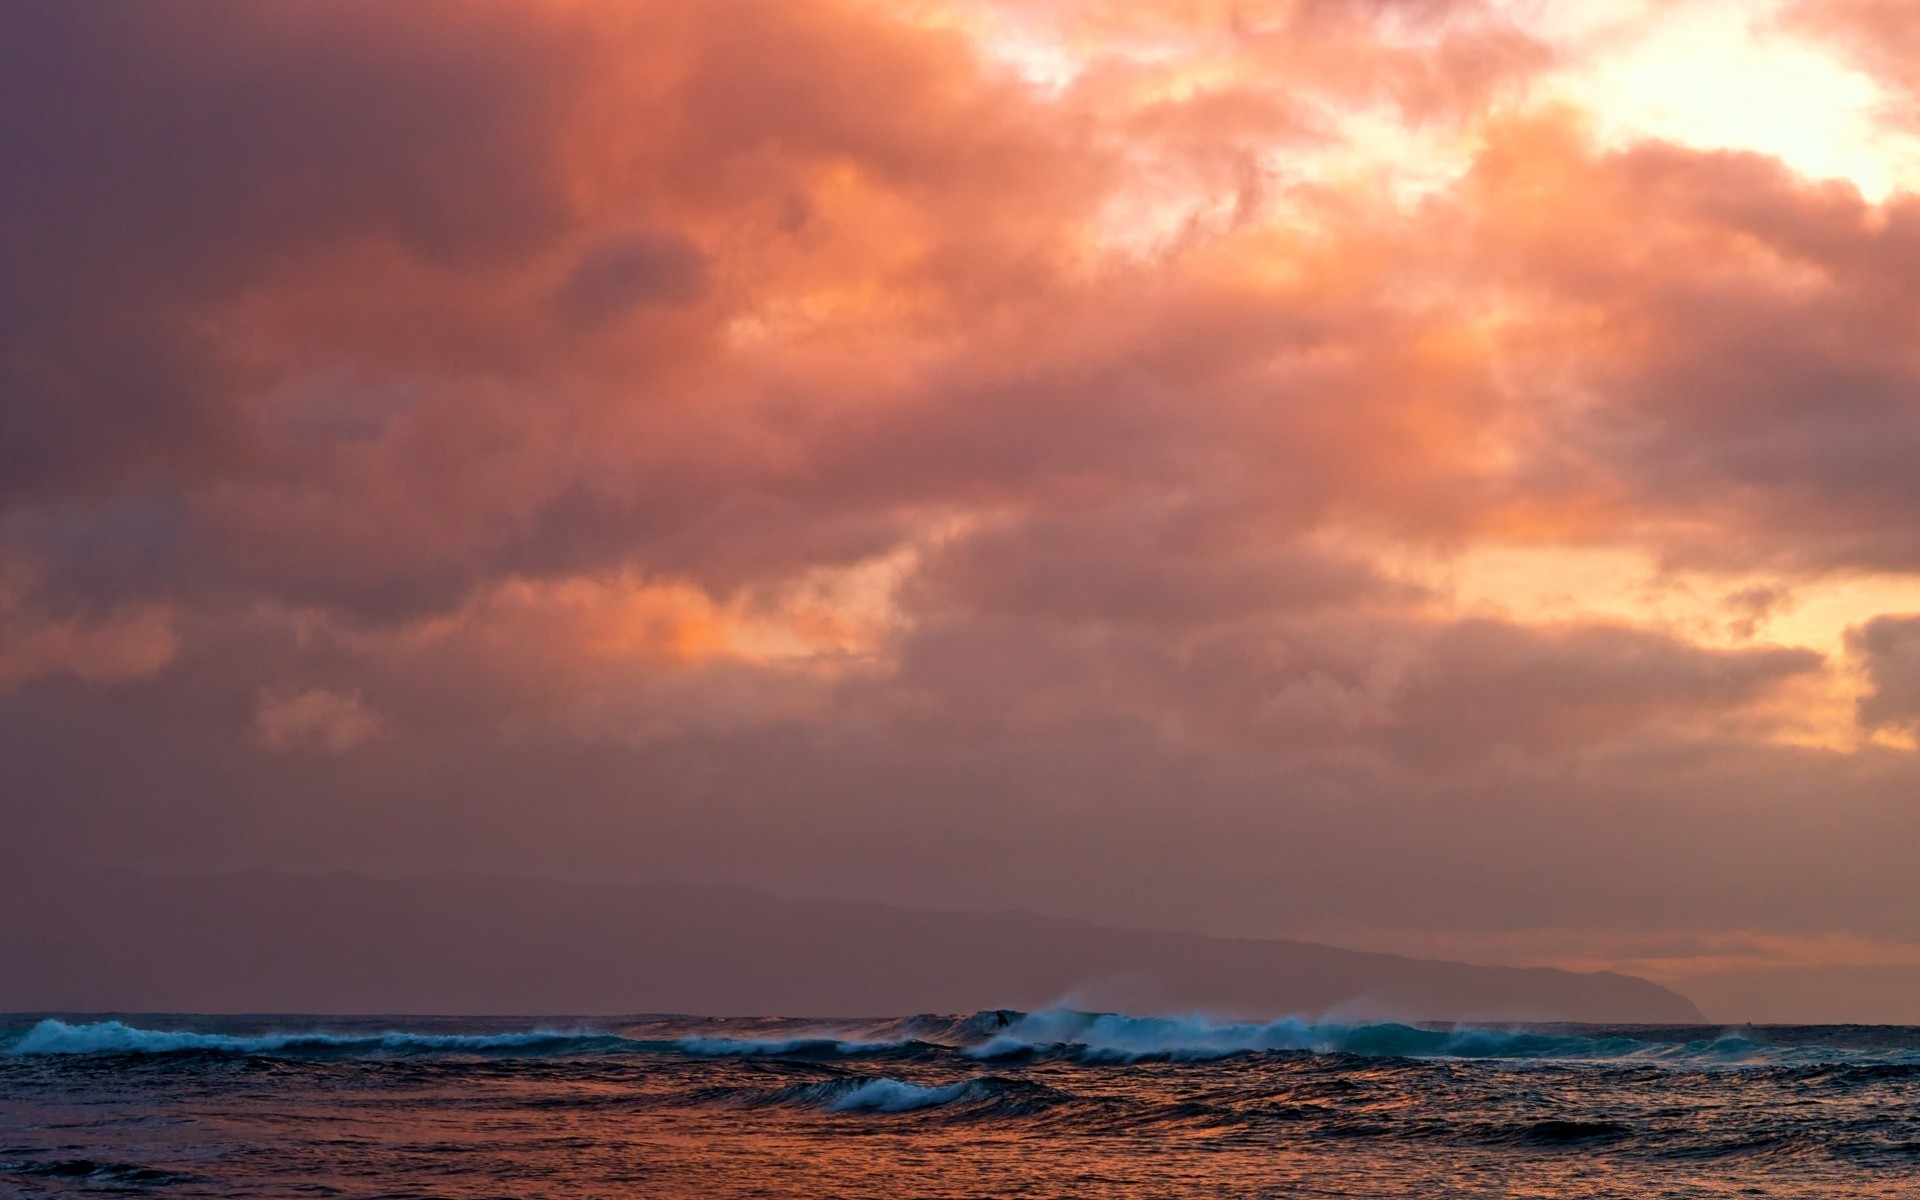 Hawaii Waves Sunset Iphone Wallpapers For Free